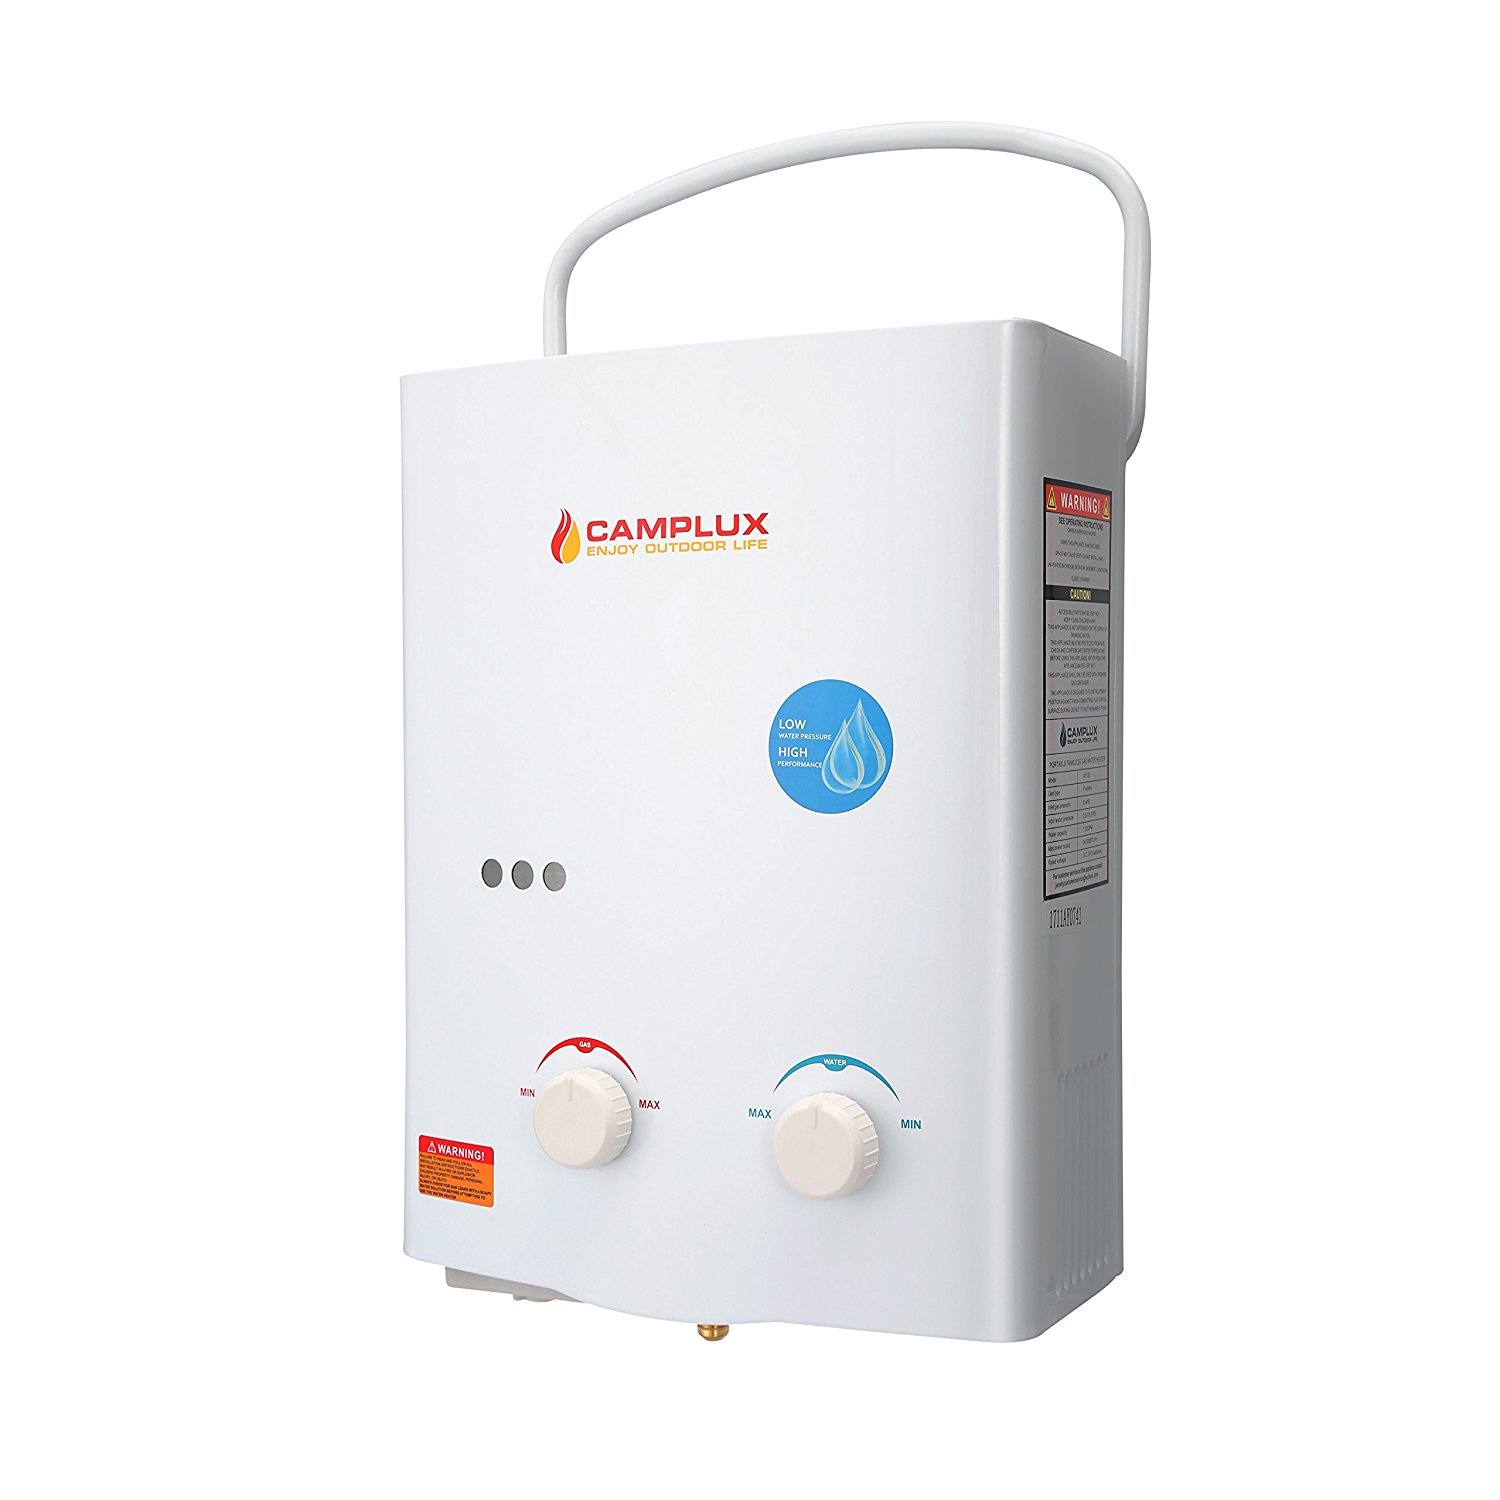 Camplux 5L Outdoor 1.32GPM Portable Propane Gas Tankless Water Heater